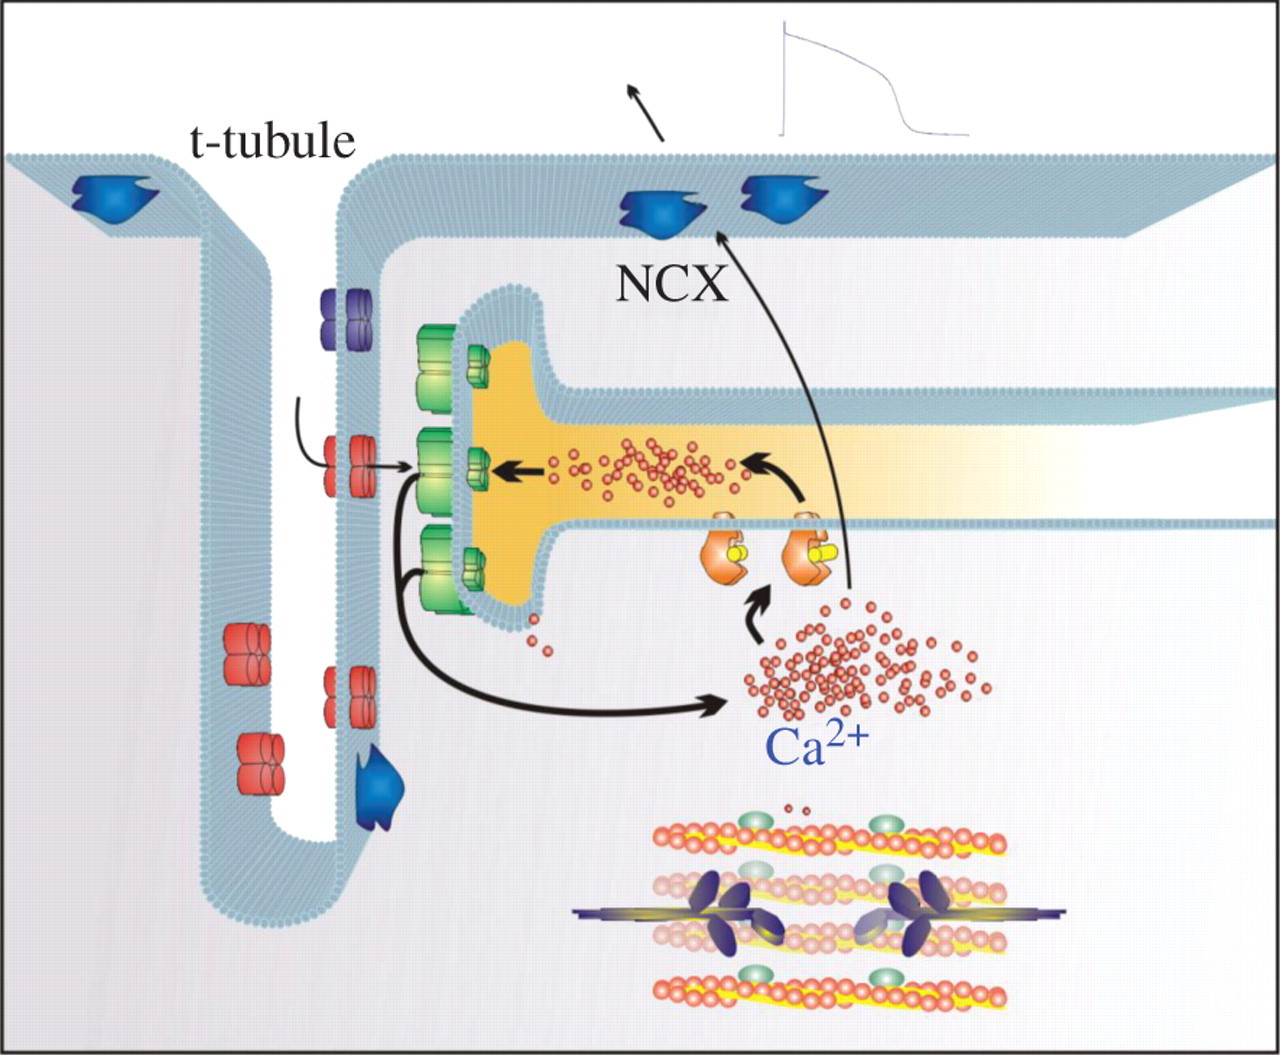 The structure and function of cardiac t-tubules in health and